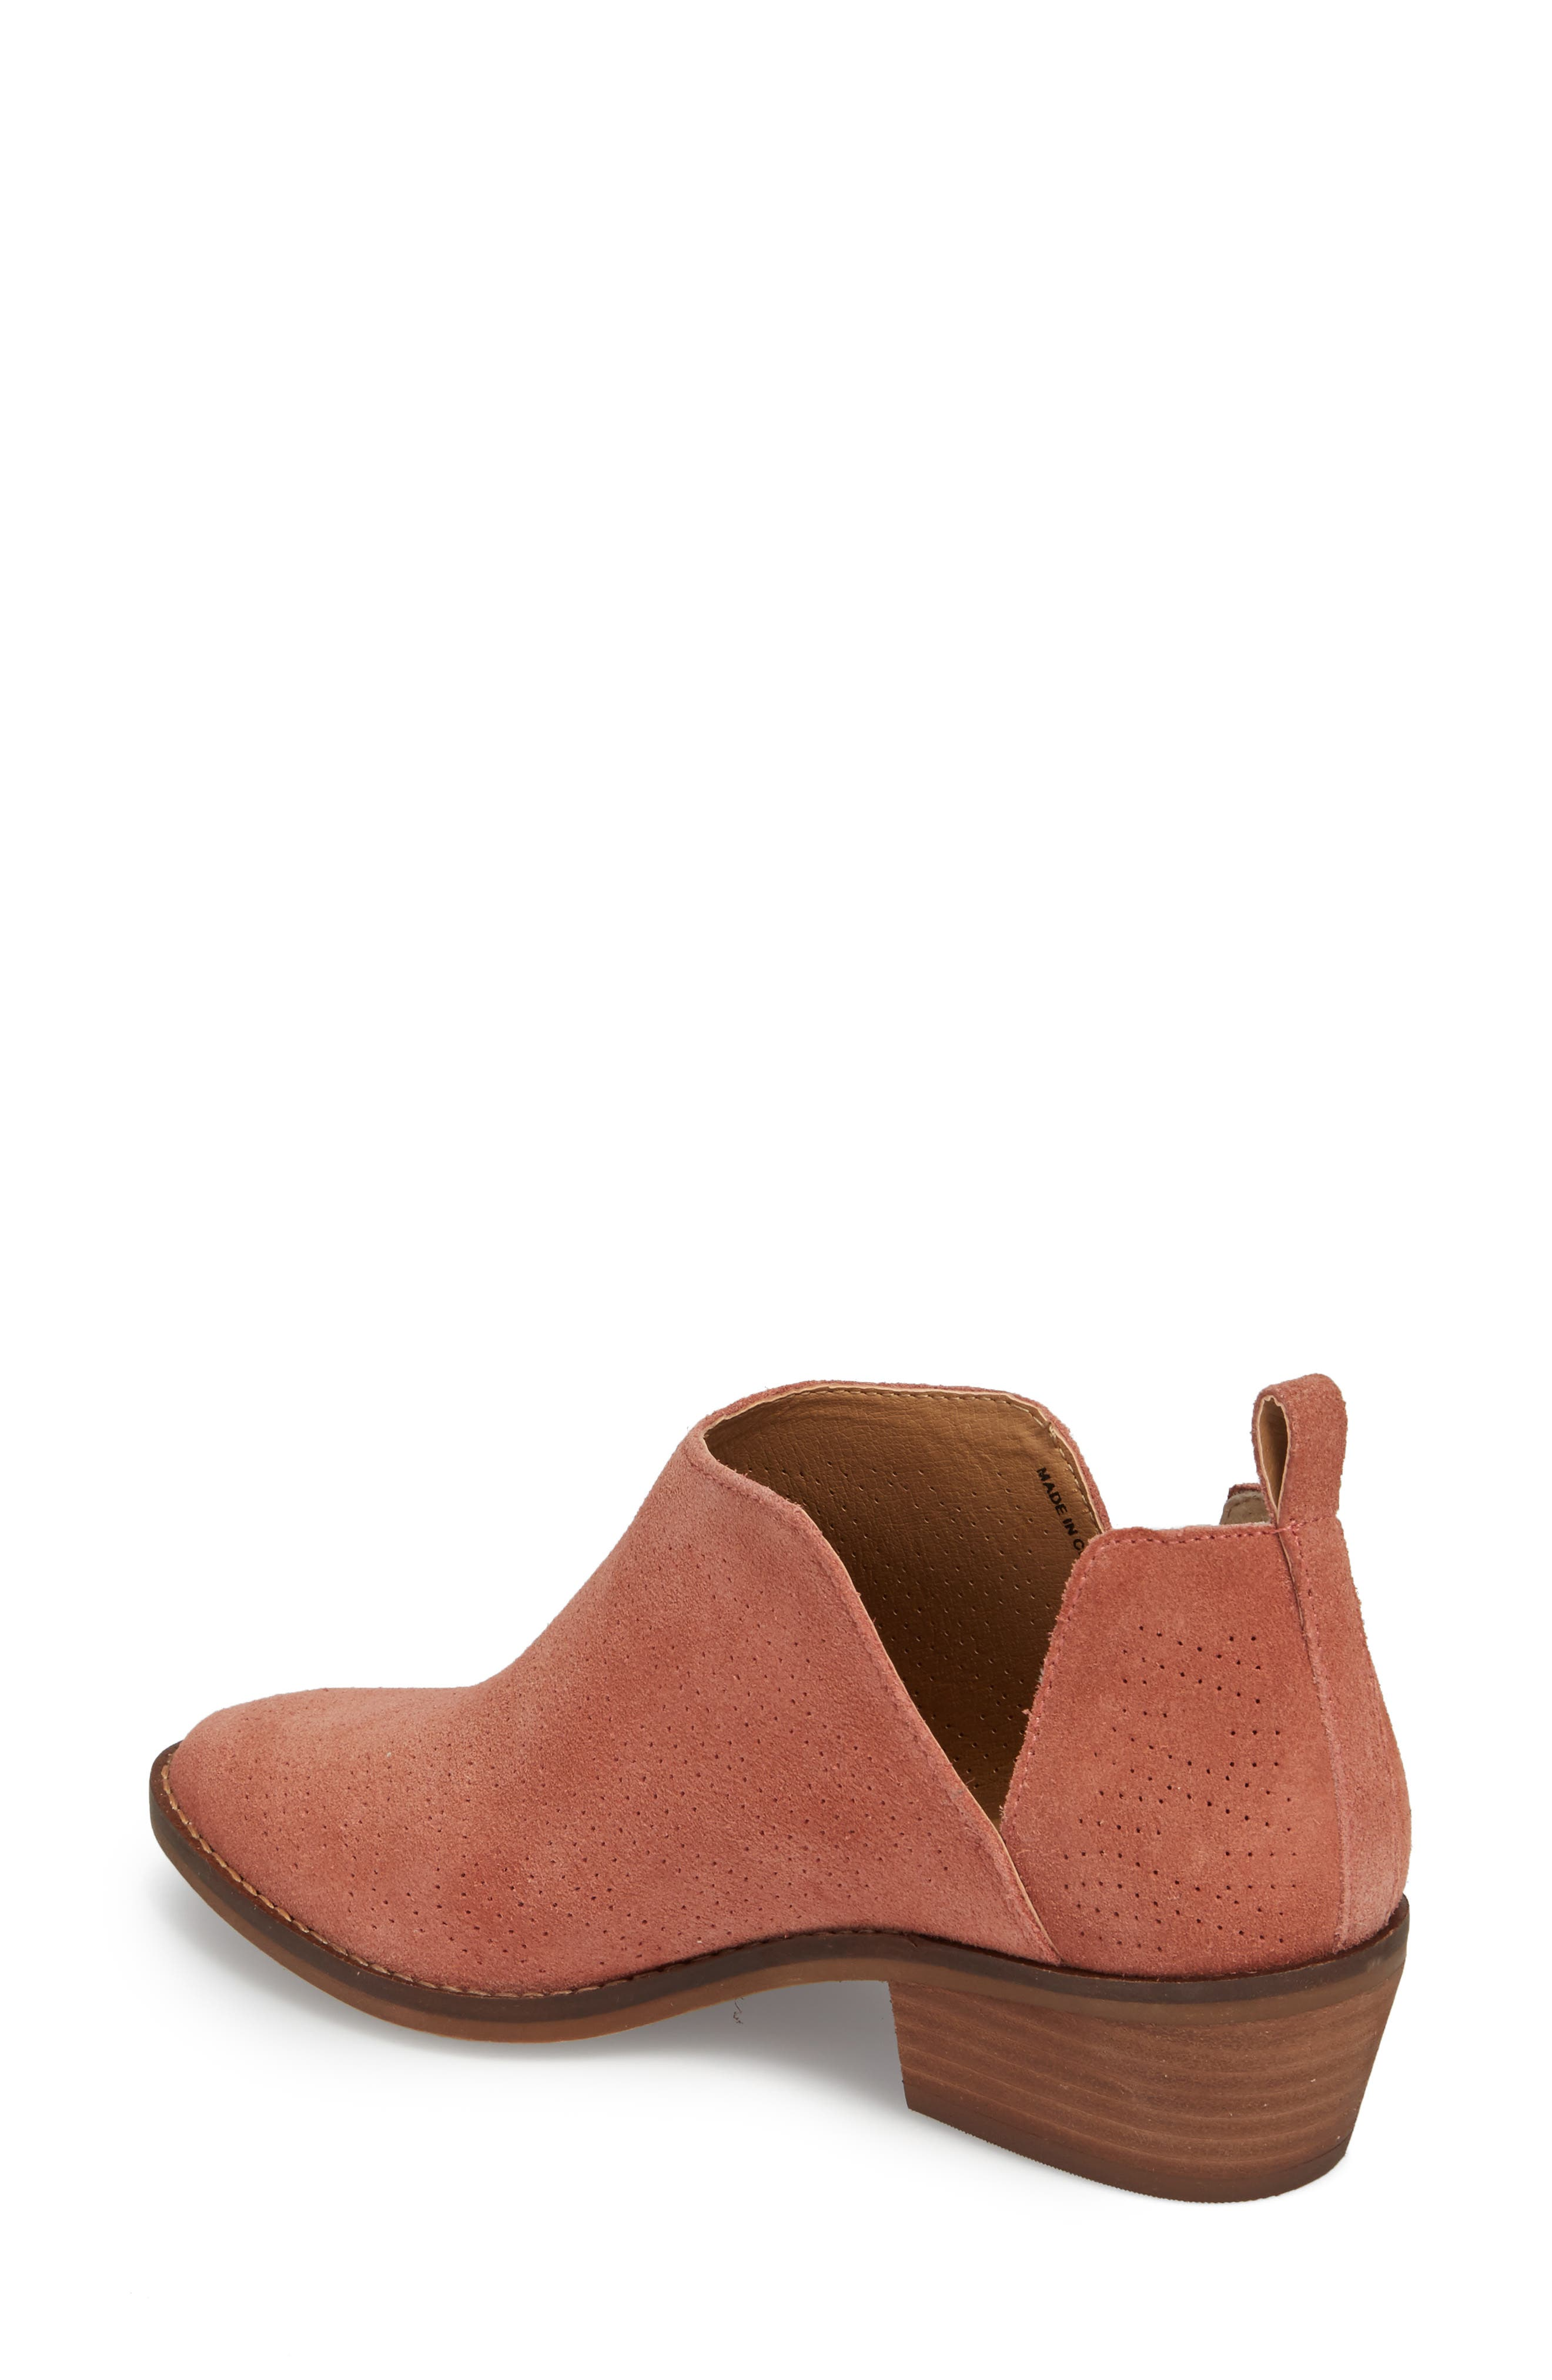 Fayth Bootie,                             Alternate thumbnail 2, color,                             Canyon Rose Suede